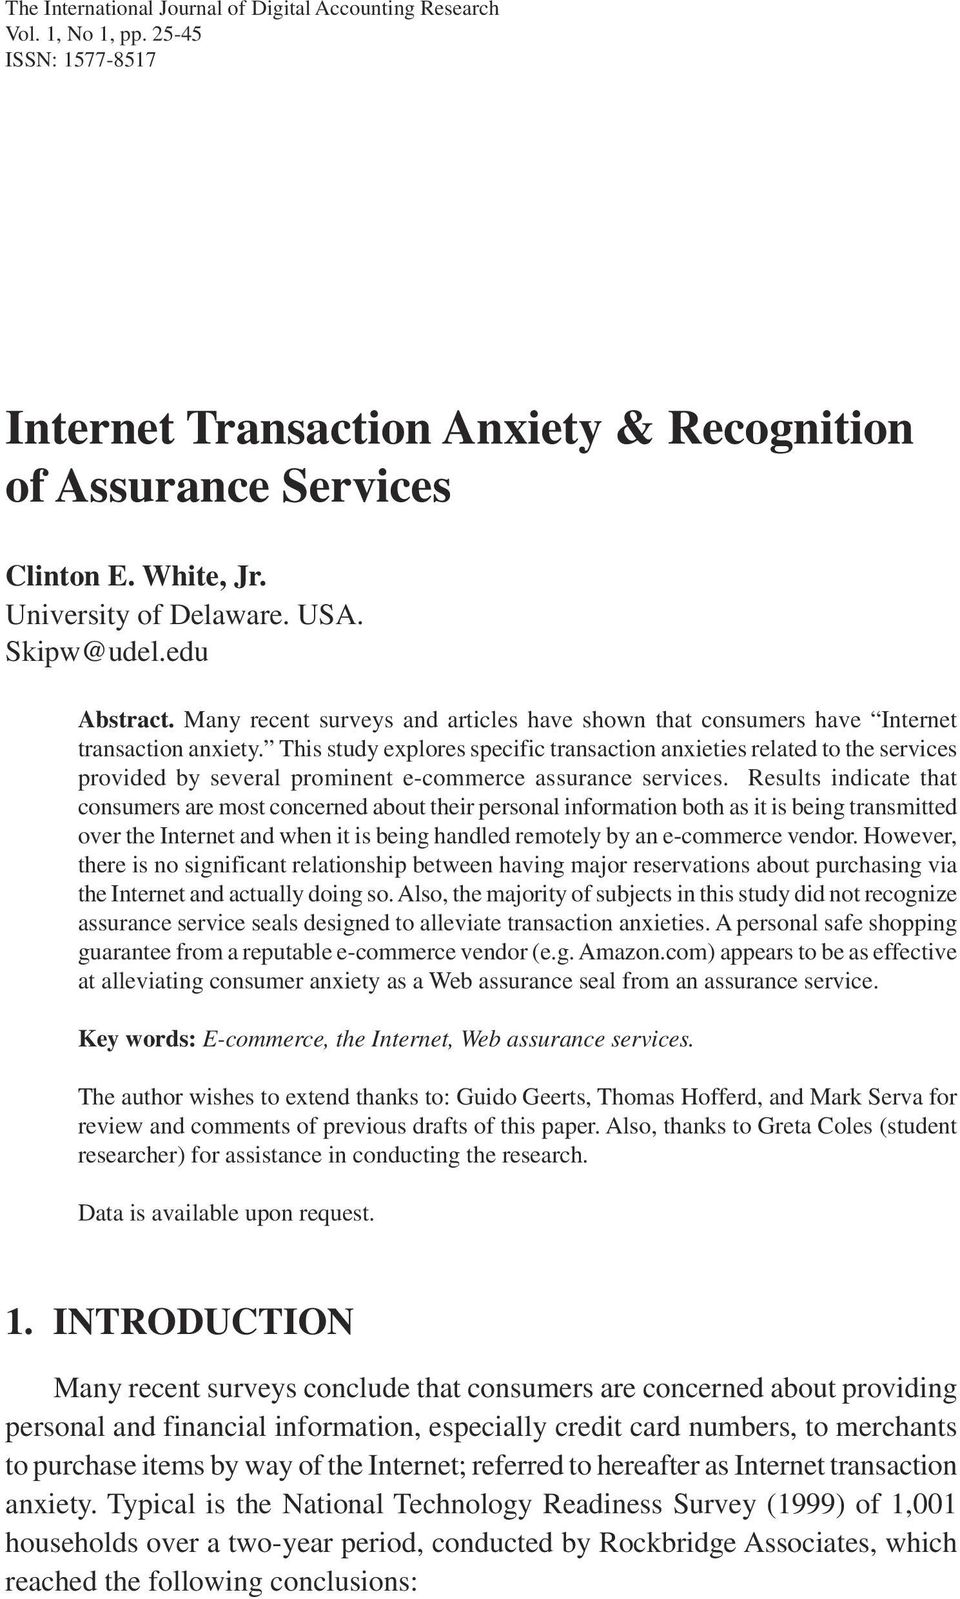 This study explores specific transaction anxieties related to the services provided by several prominent e-commerce assurance services.